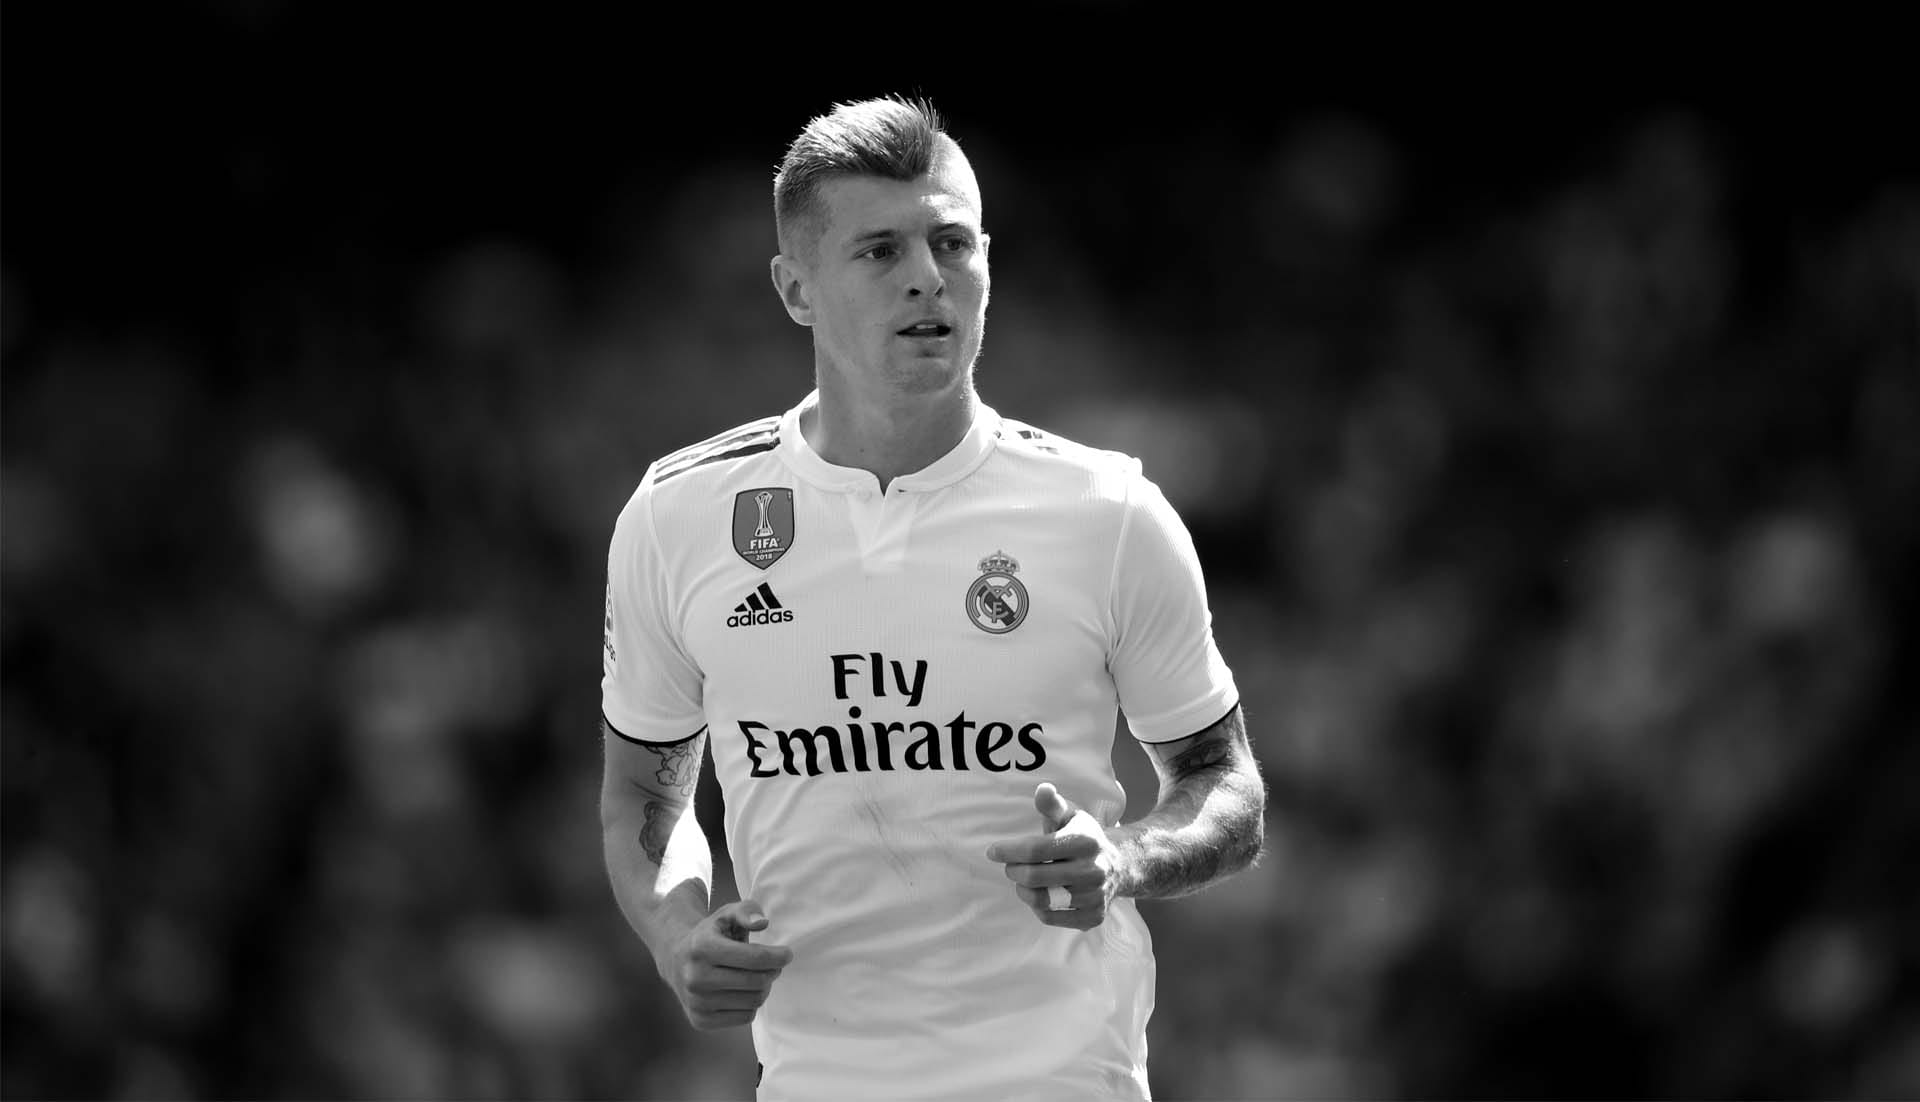 dd2e02adf09 Real Madrid And adidas Extend Partenership - SoccerBible.